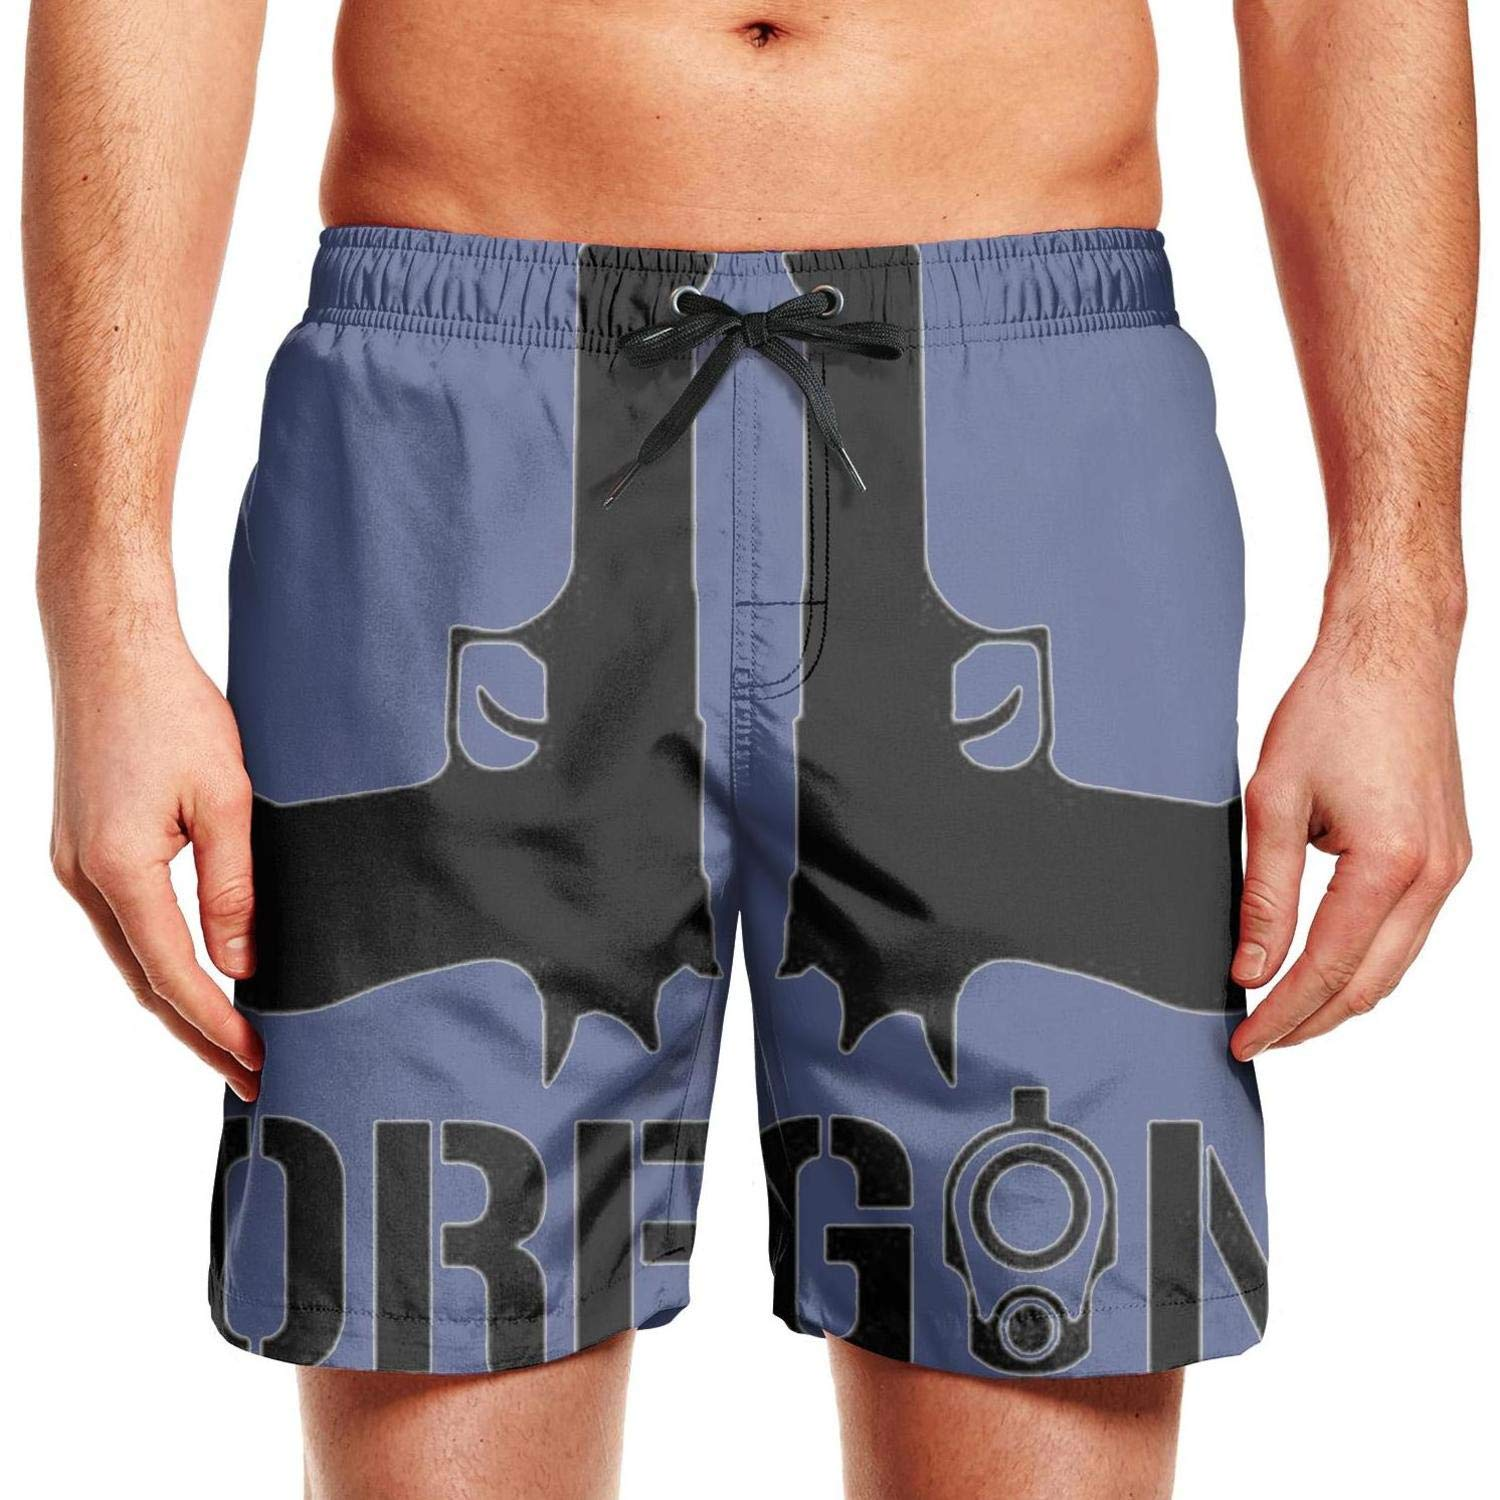 Oregon HA Mans Shorts Loose Quick Dry Summer Beach Trunks